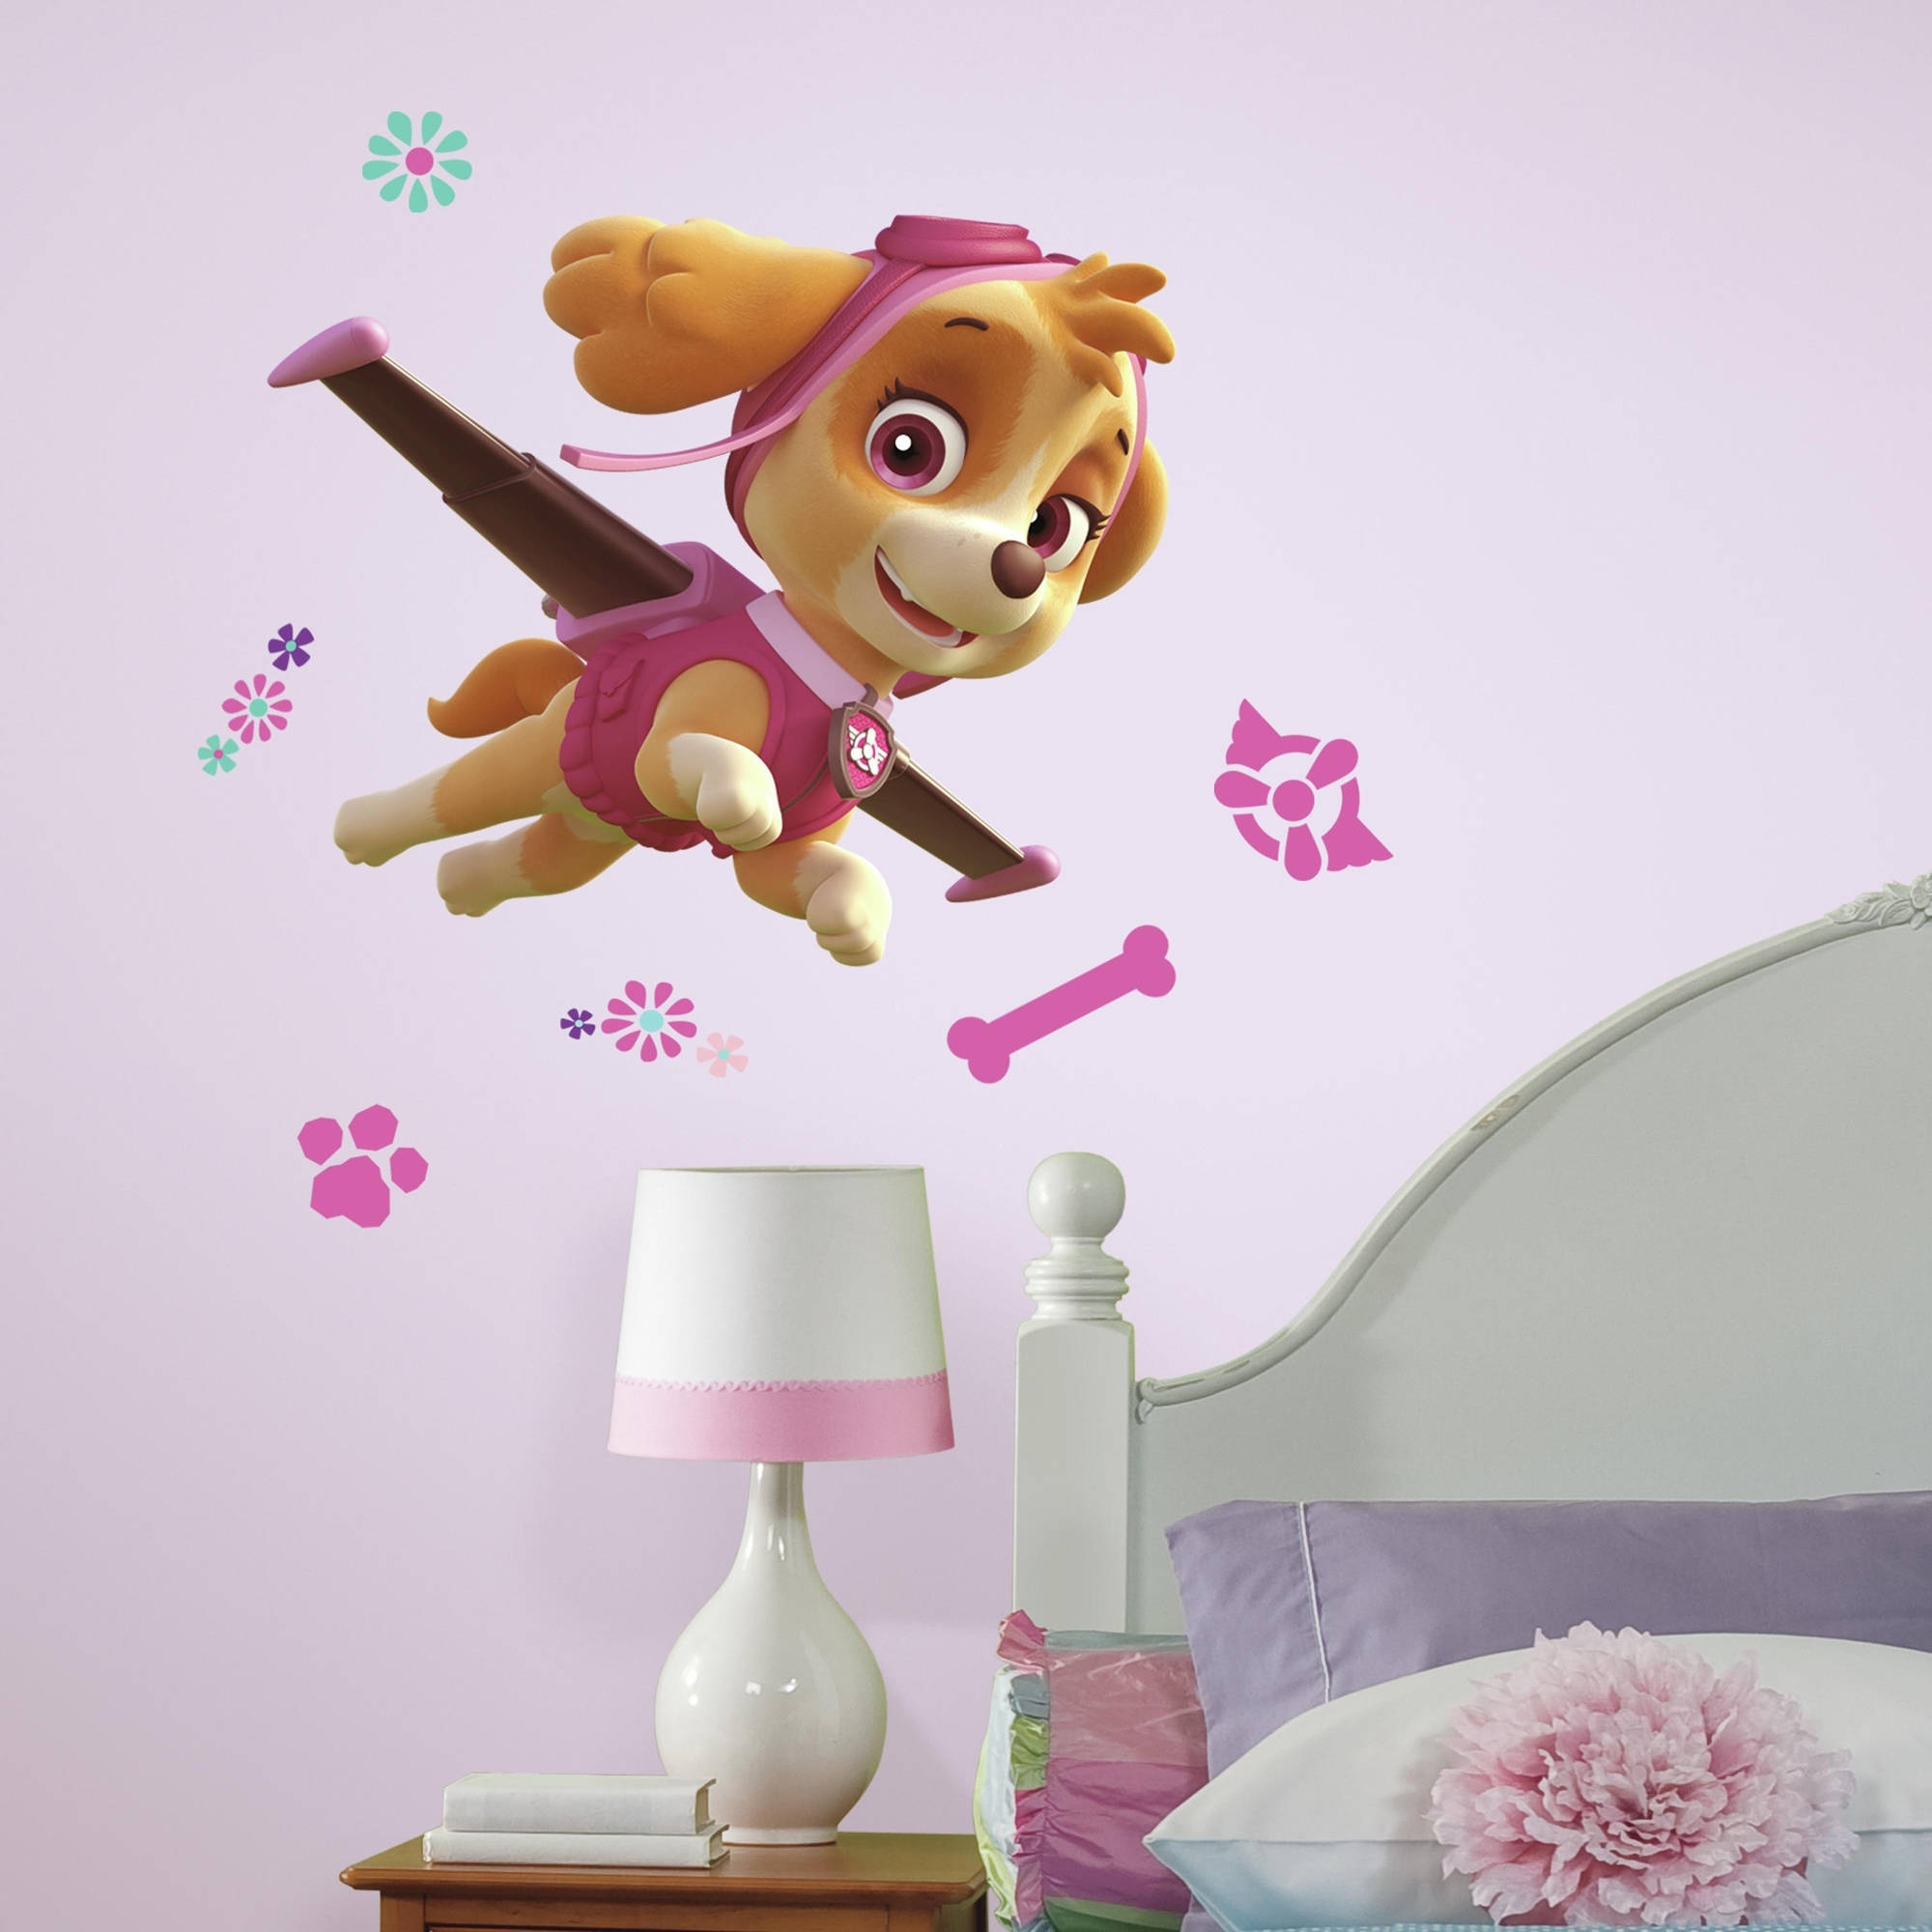 Favorite Preschool Classroom Wall Decals For Roommates Paw Patrol Skye Peel And Stick Giant Wall Decals (View 8 of 15)